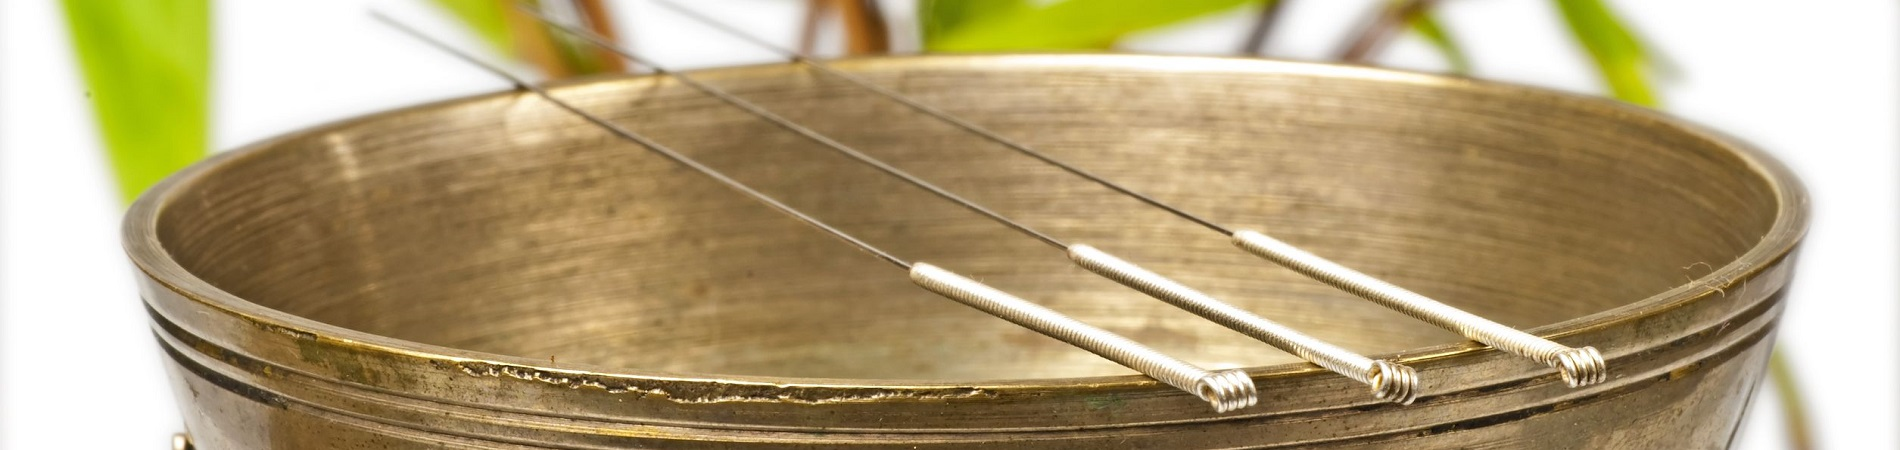 Acupuncture needles resting on a brass bowl - Acupunture services from Worcester Acupuncture